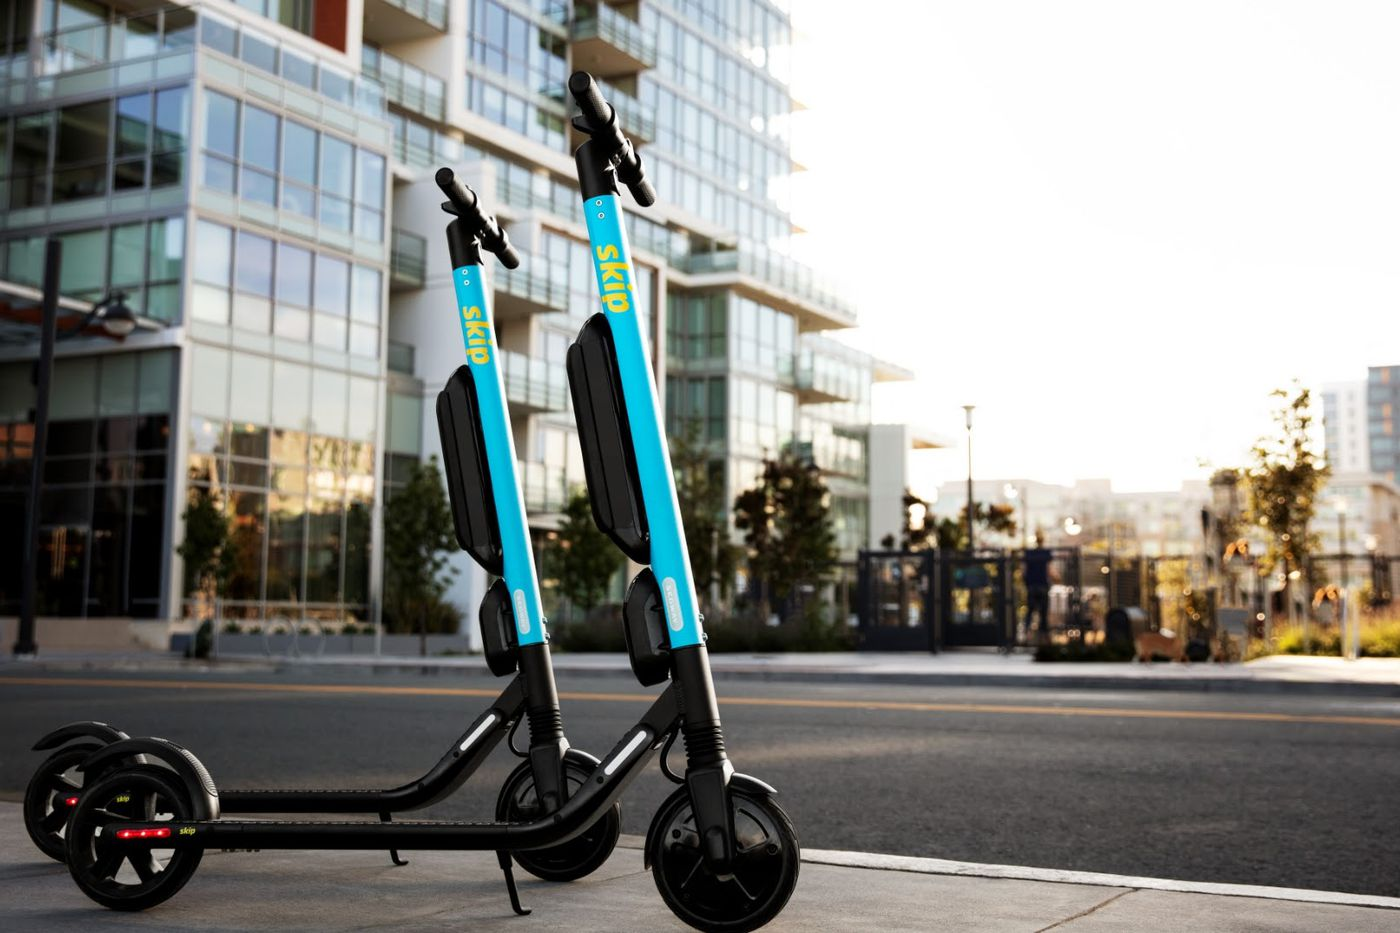 Skip Pulls Back The Curtain On The High Costs Of Electric Scooter Maintenance The Verge